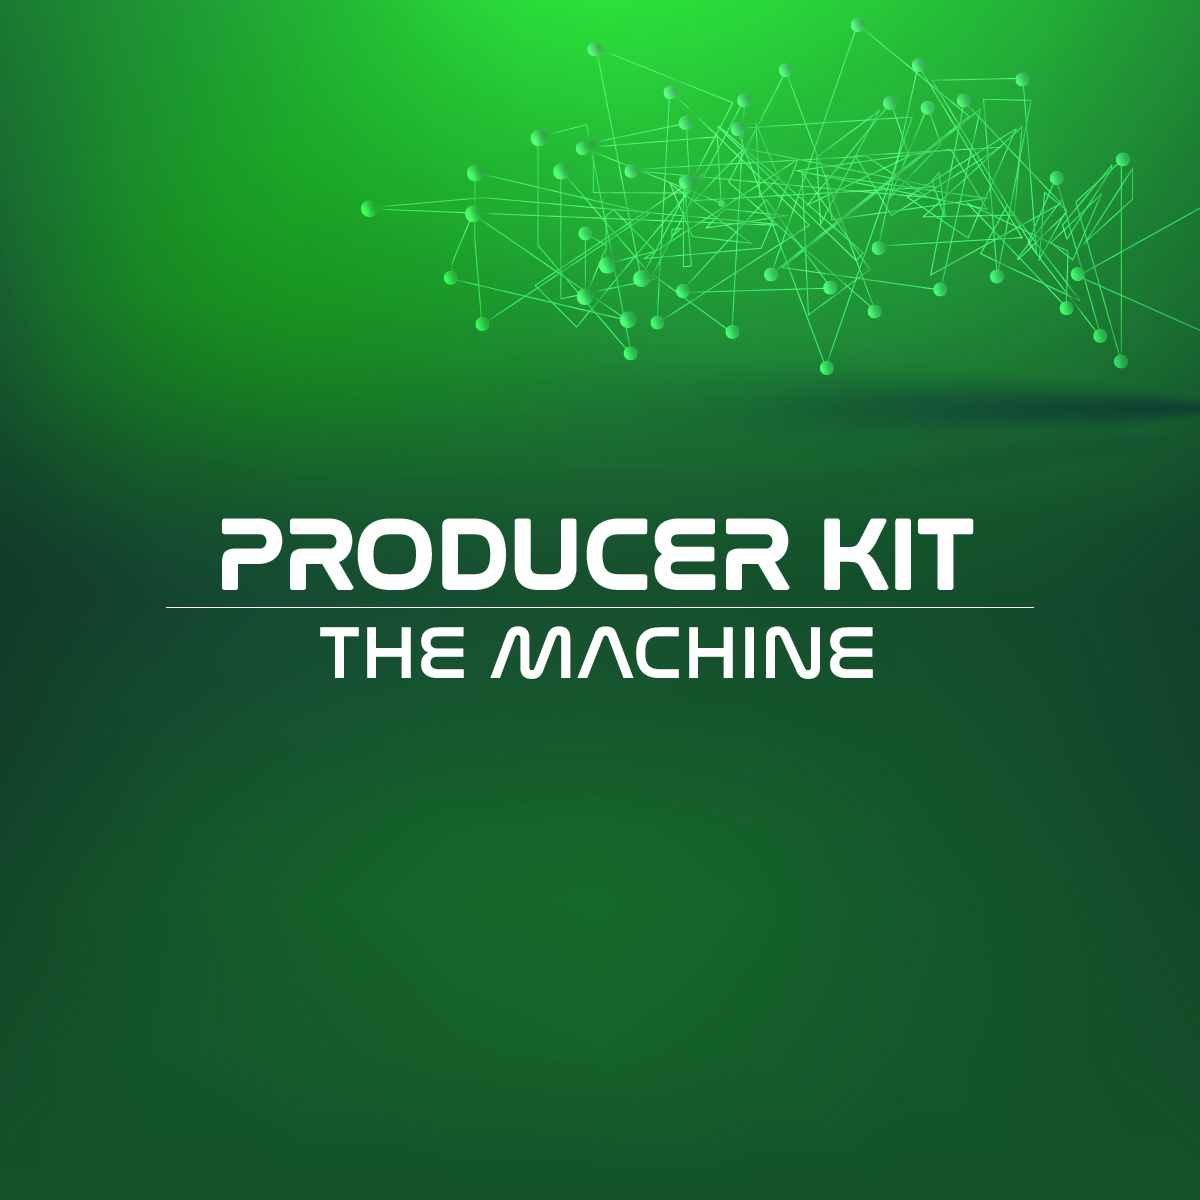 Producer Kit The Machine